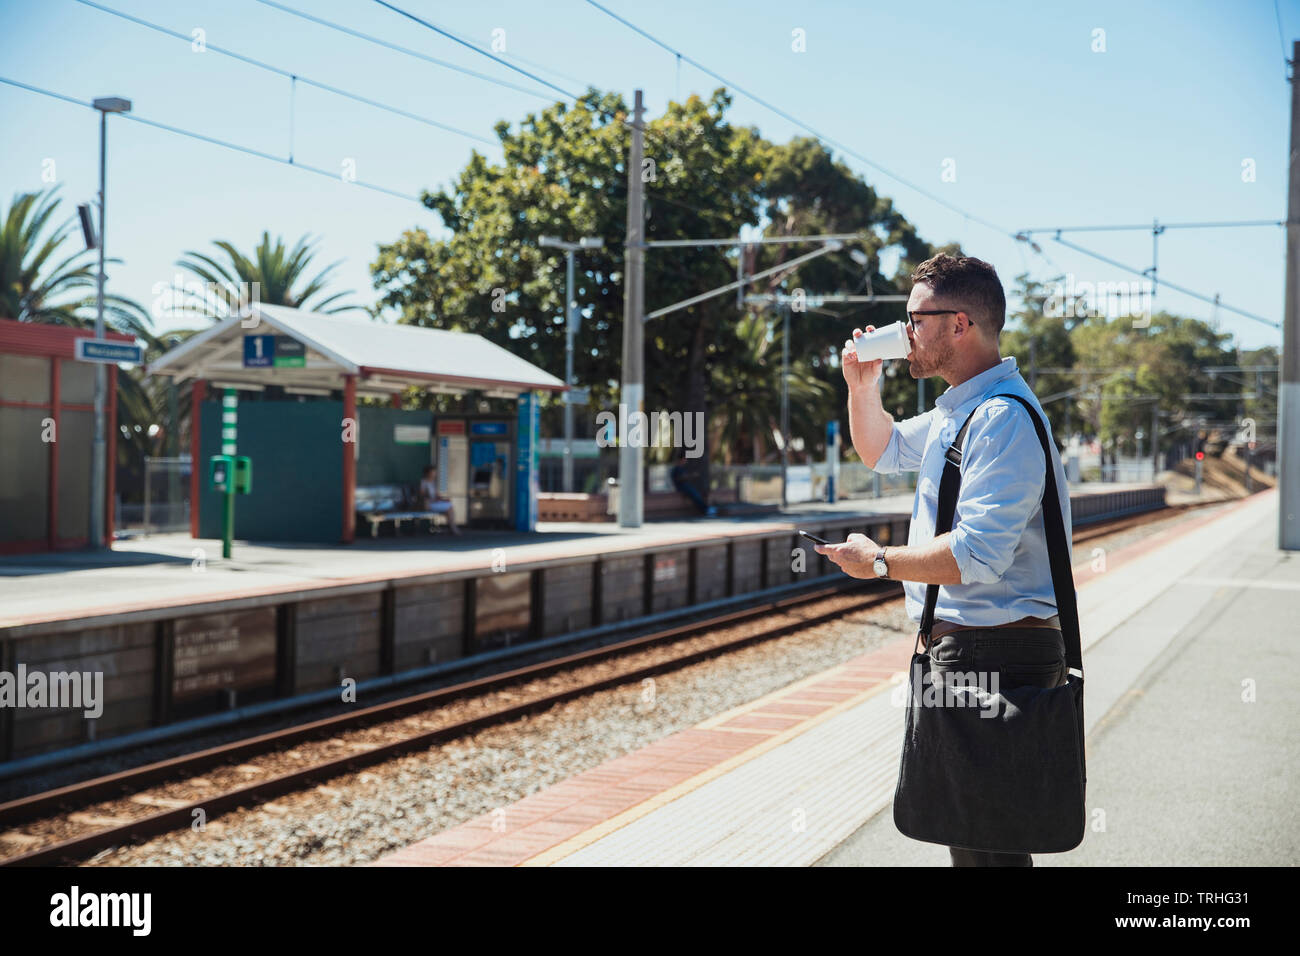 A side-view shot of a mid-adult caucasian businessman waiting at a railroad station platform while he drinks from a cup of coffee, he is catching the - Stock Image